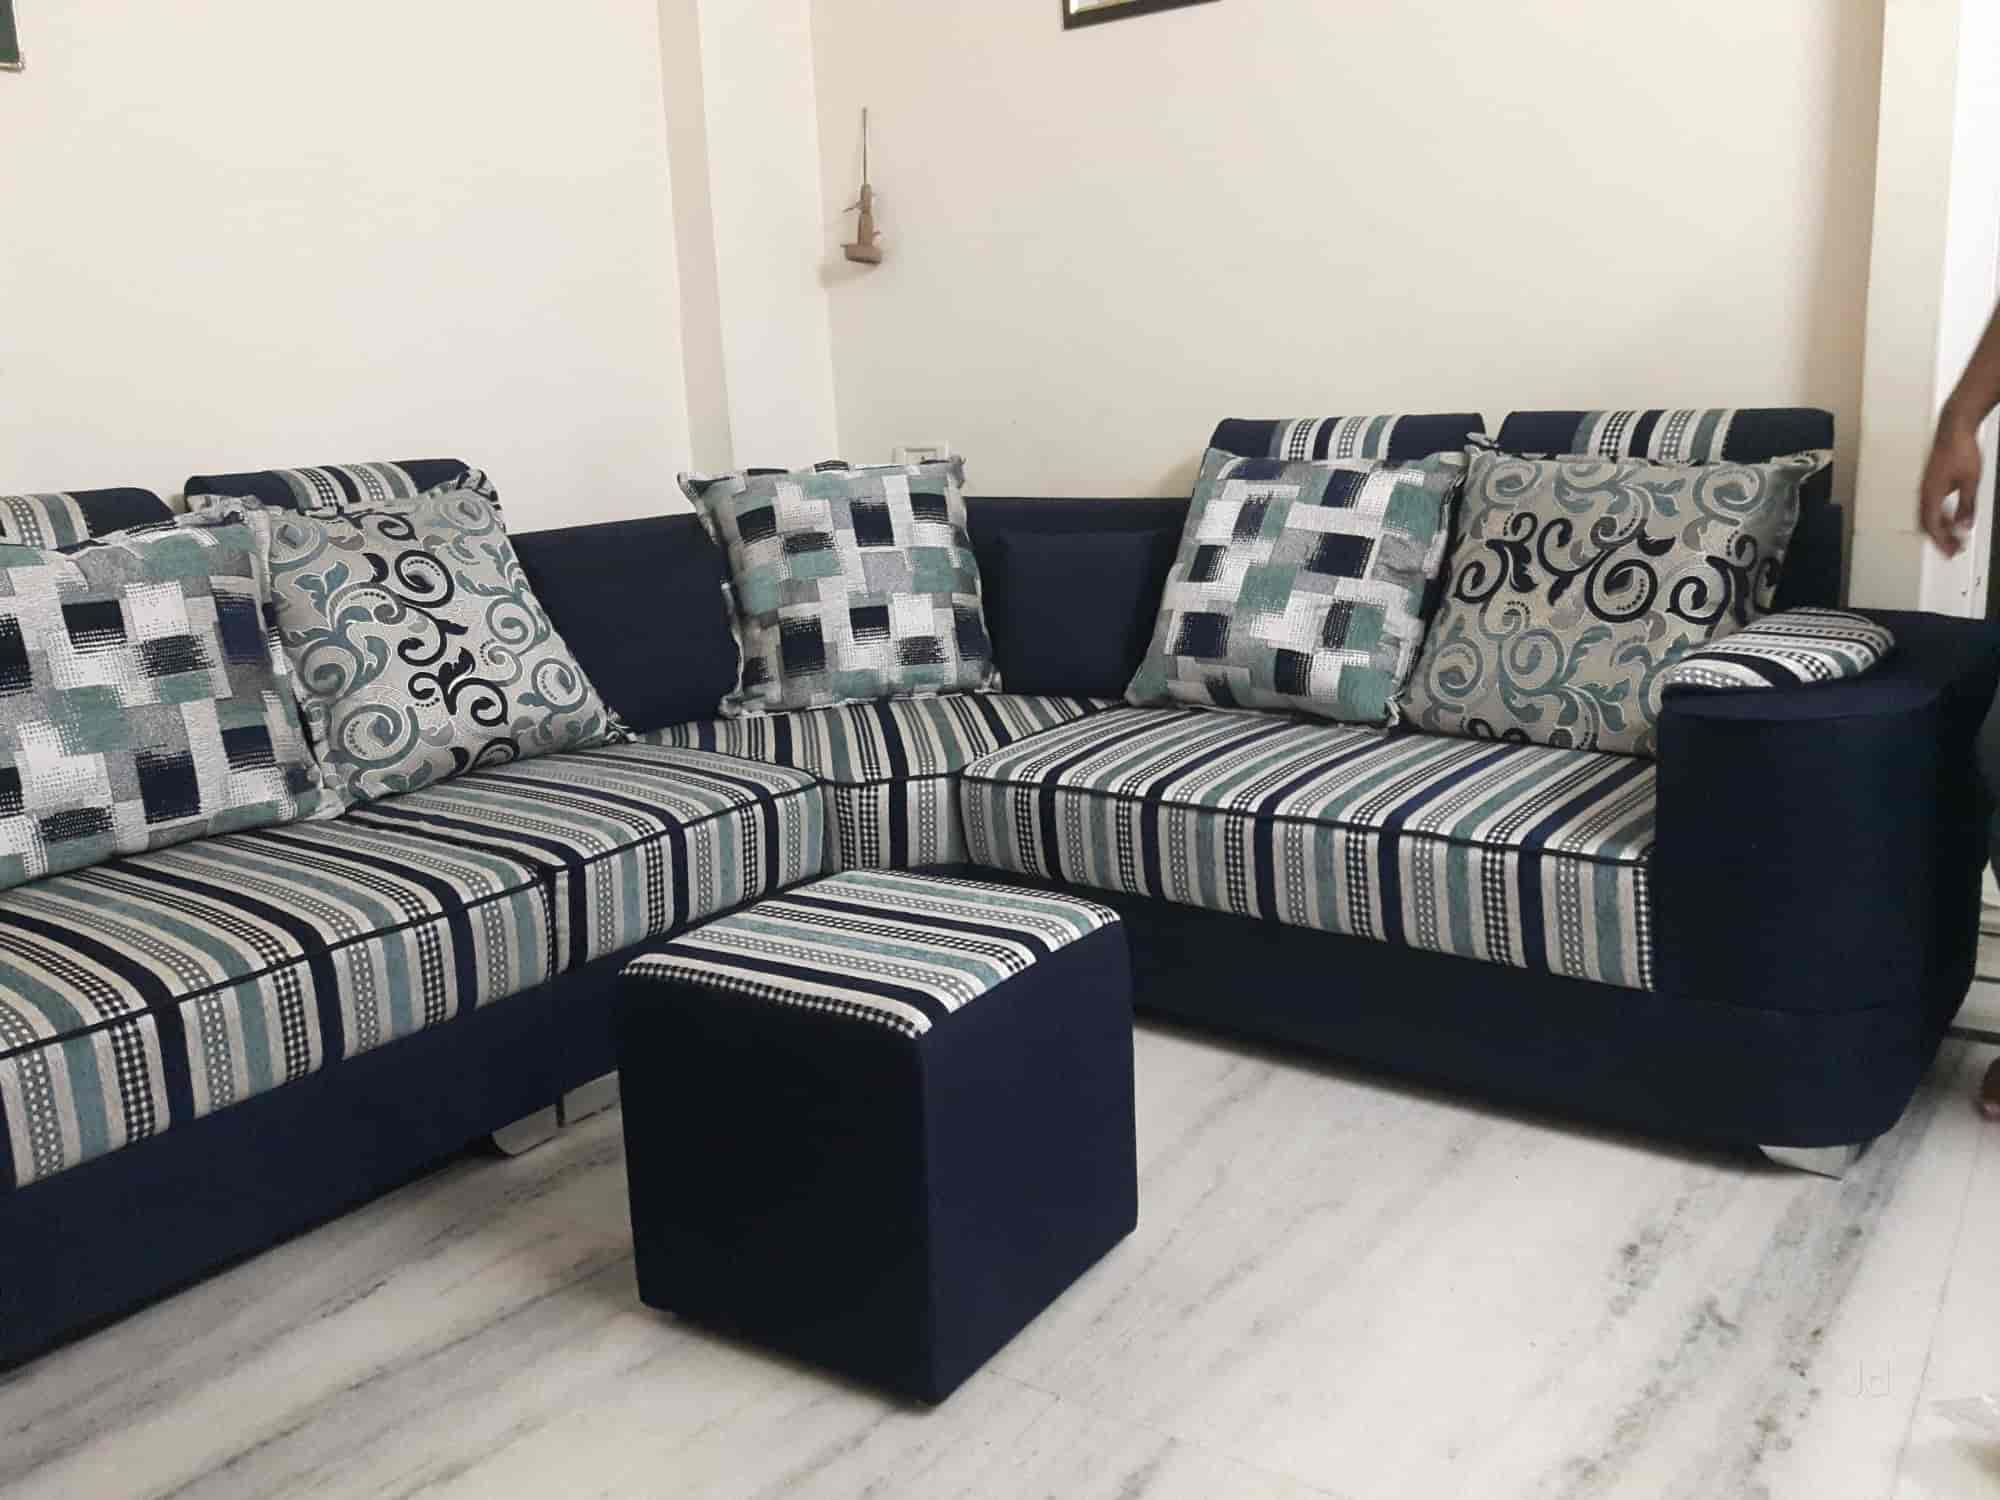 sofa sets at low price in hyderabad diy chesterfield plans furniture space chanda nagar manufacturers justdial